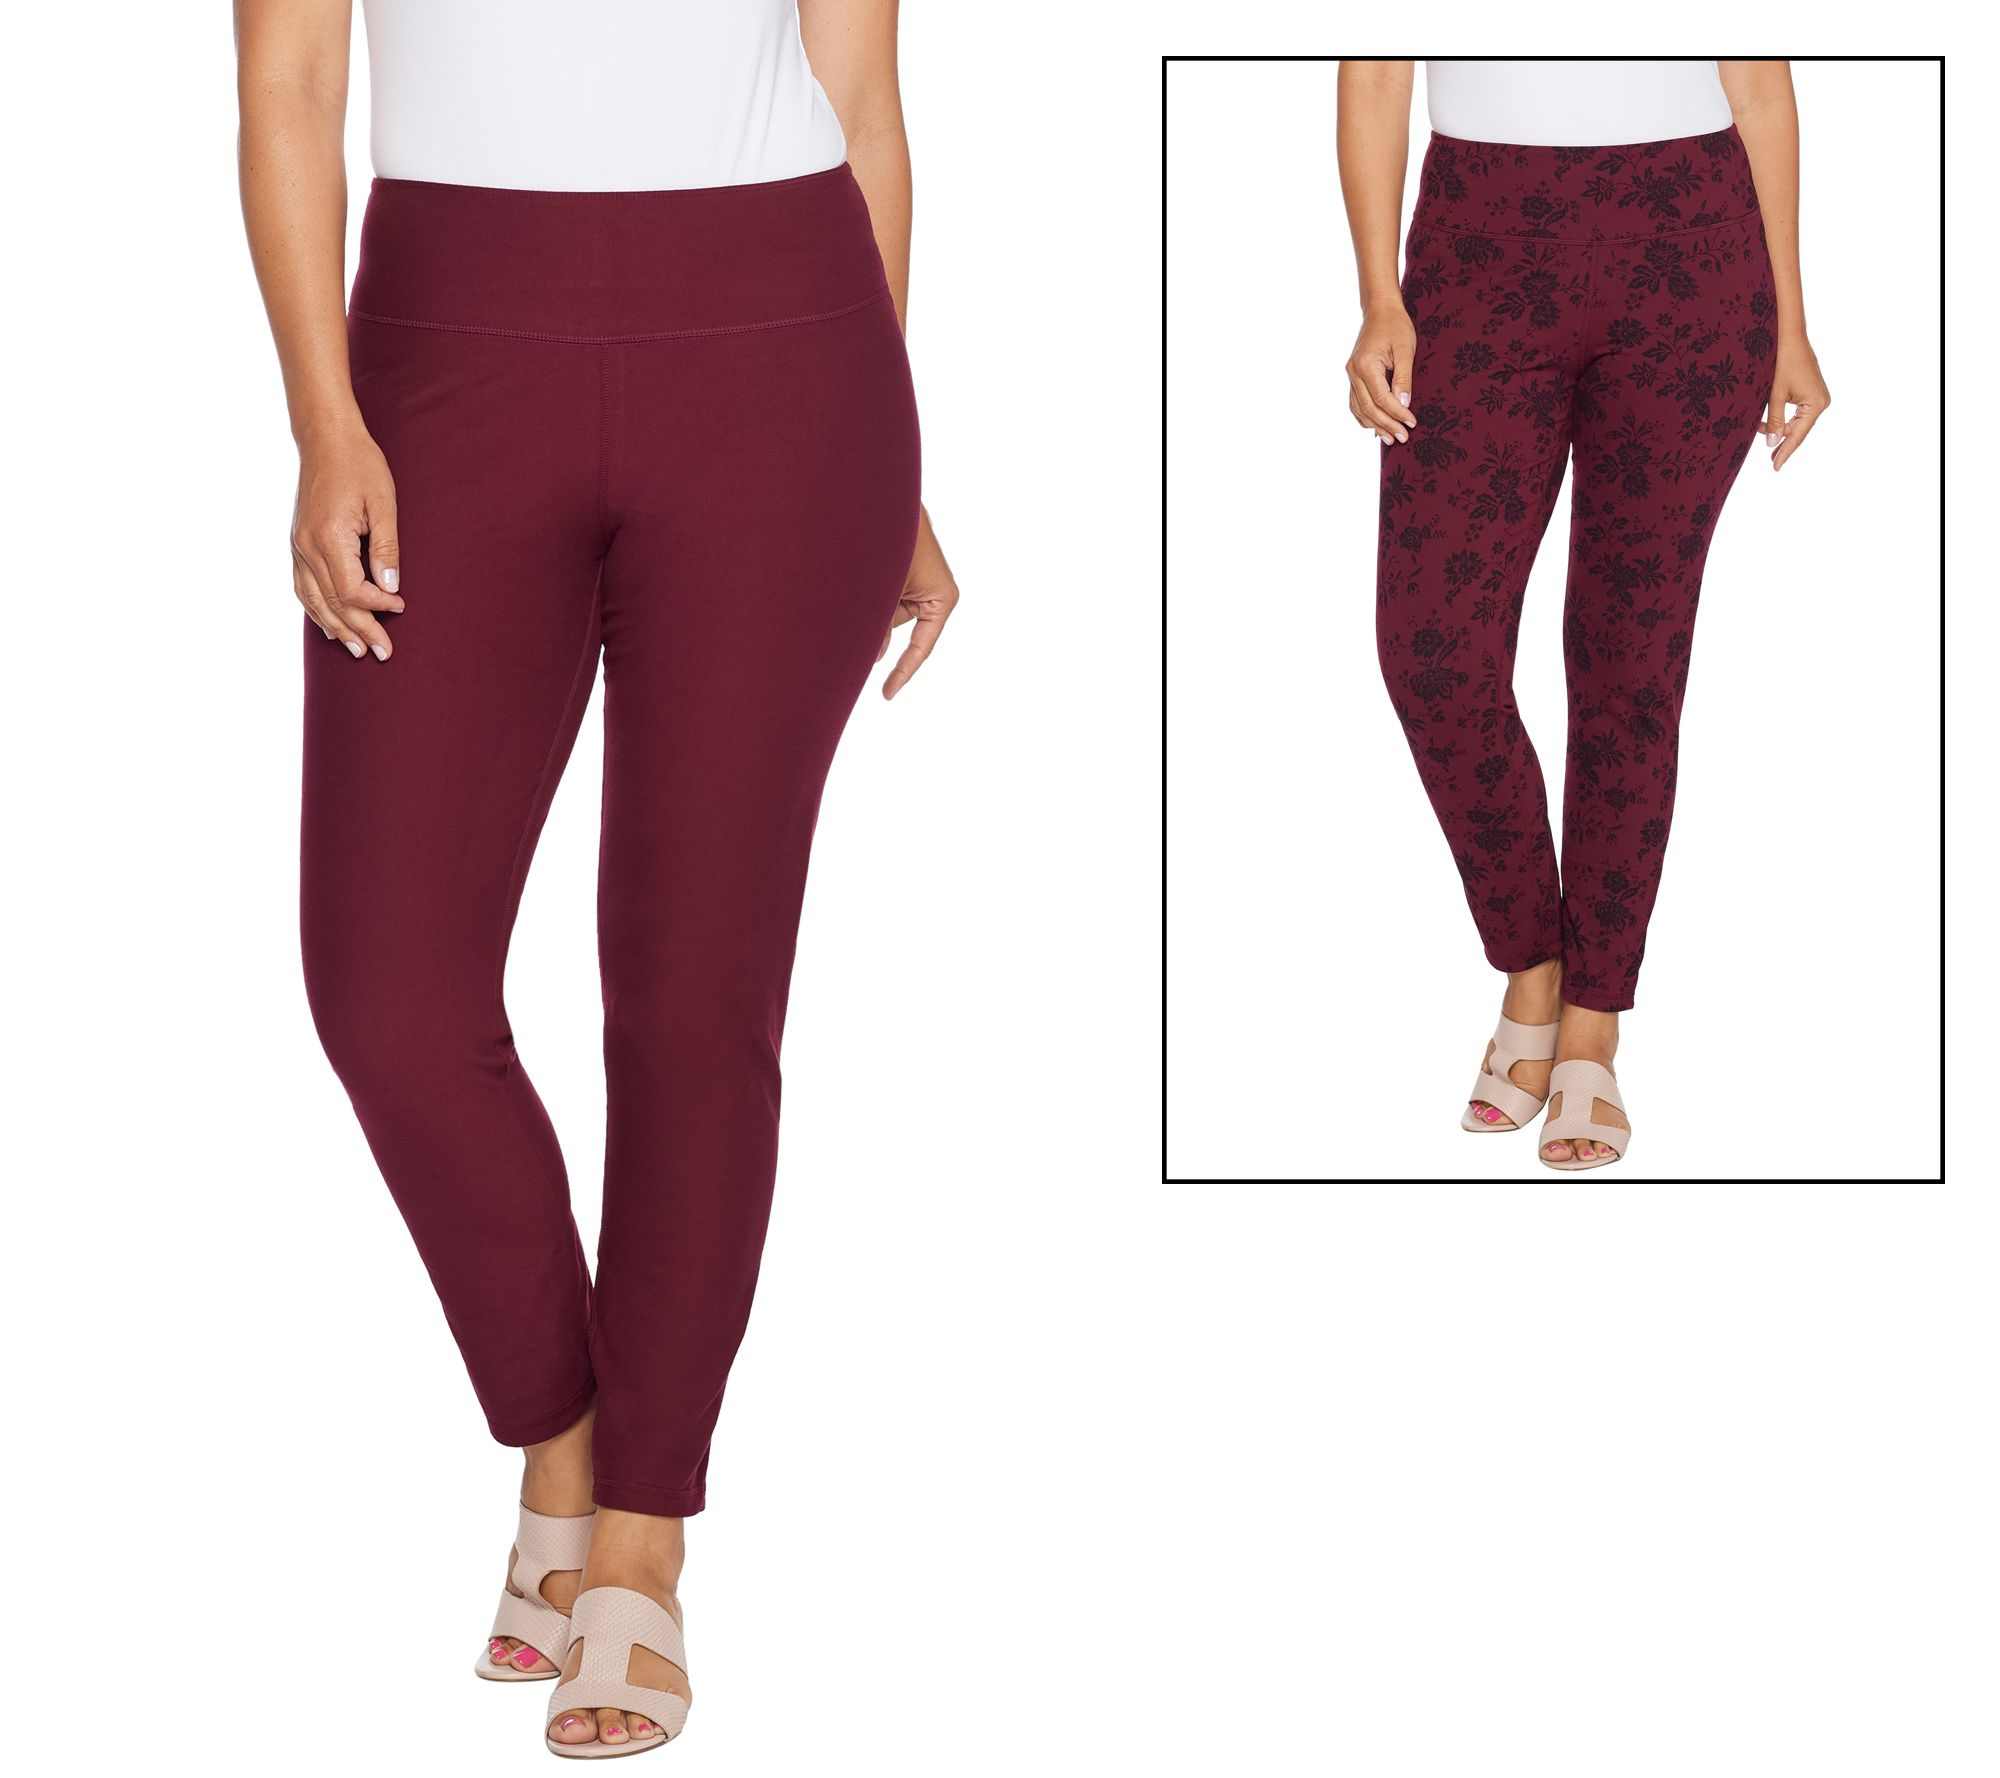 07c78492cd1dfc Women with Control Regular Renee's Reversibles Ankle Pants - Page 1 —  QVC.com